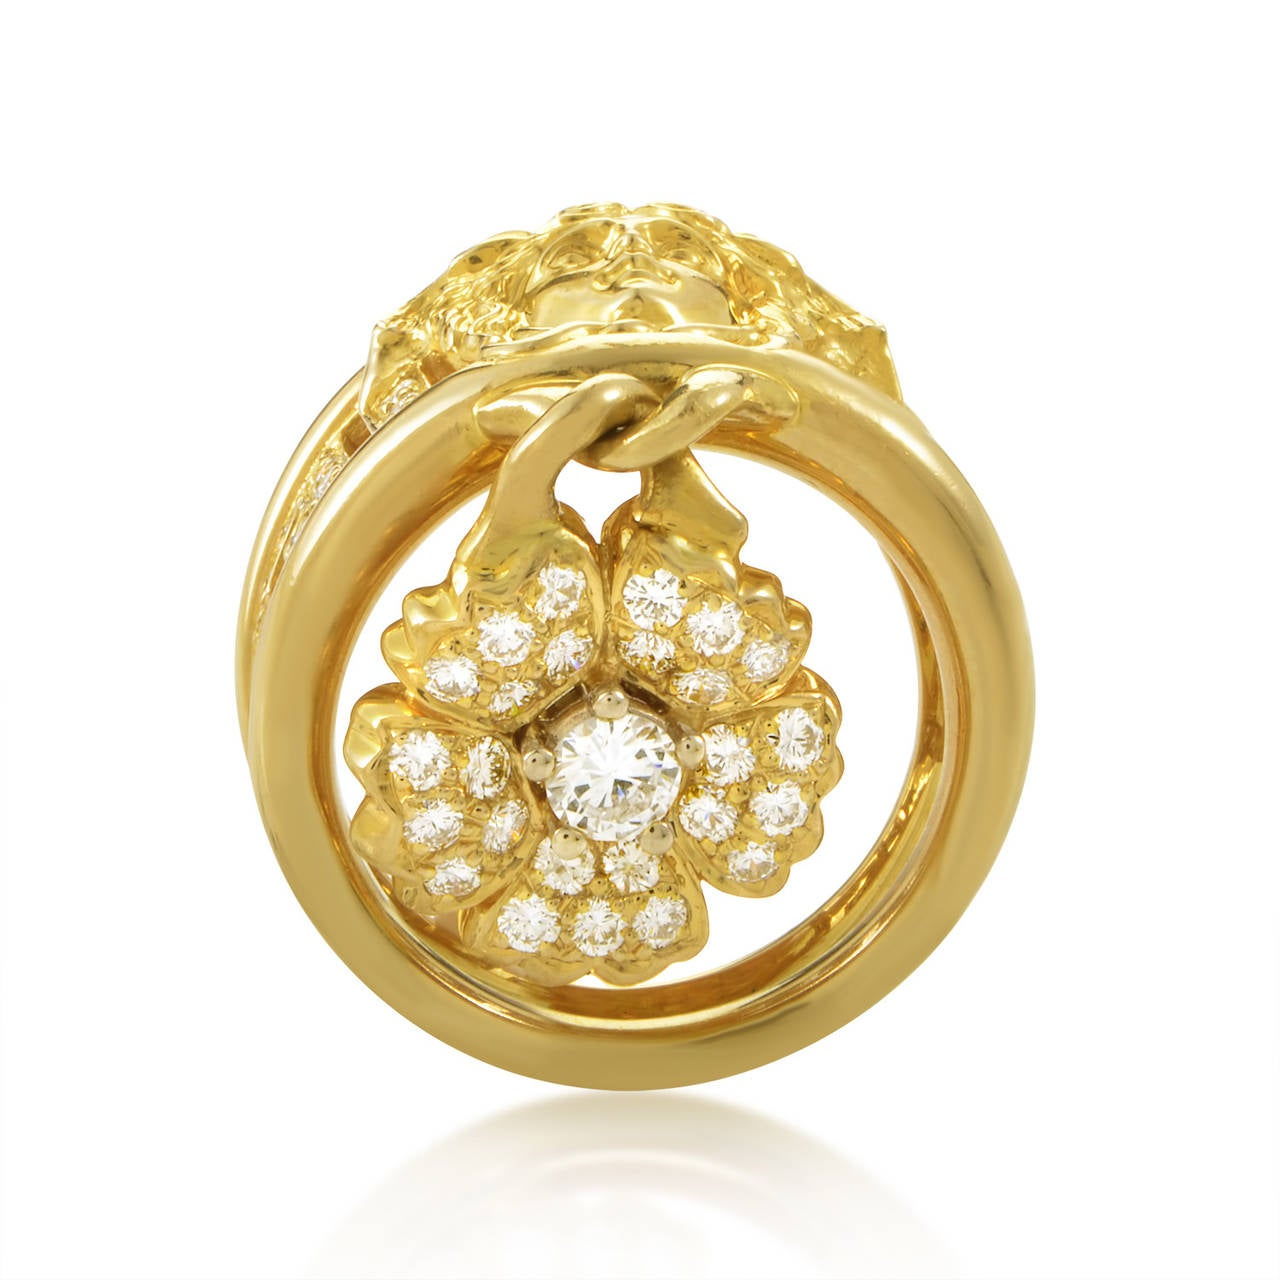 versace pave gold flower charm ring at 1stdibs